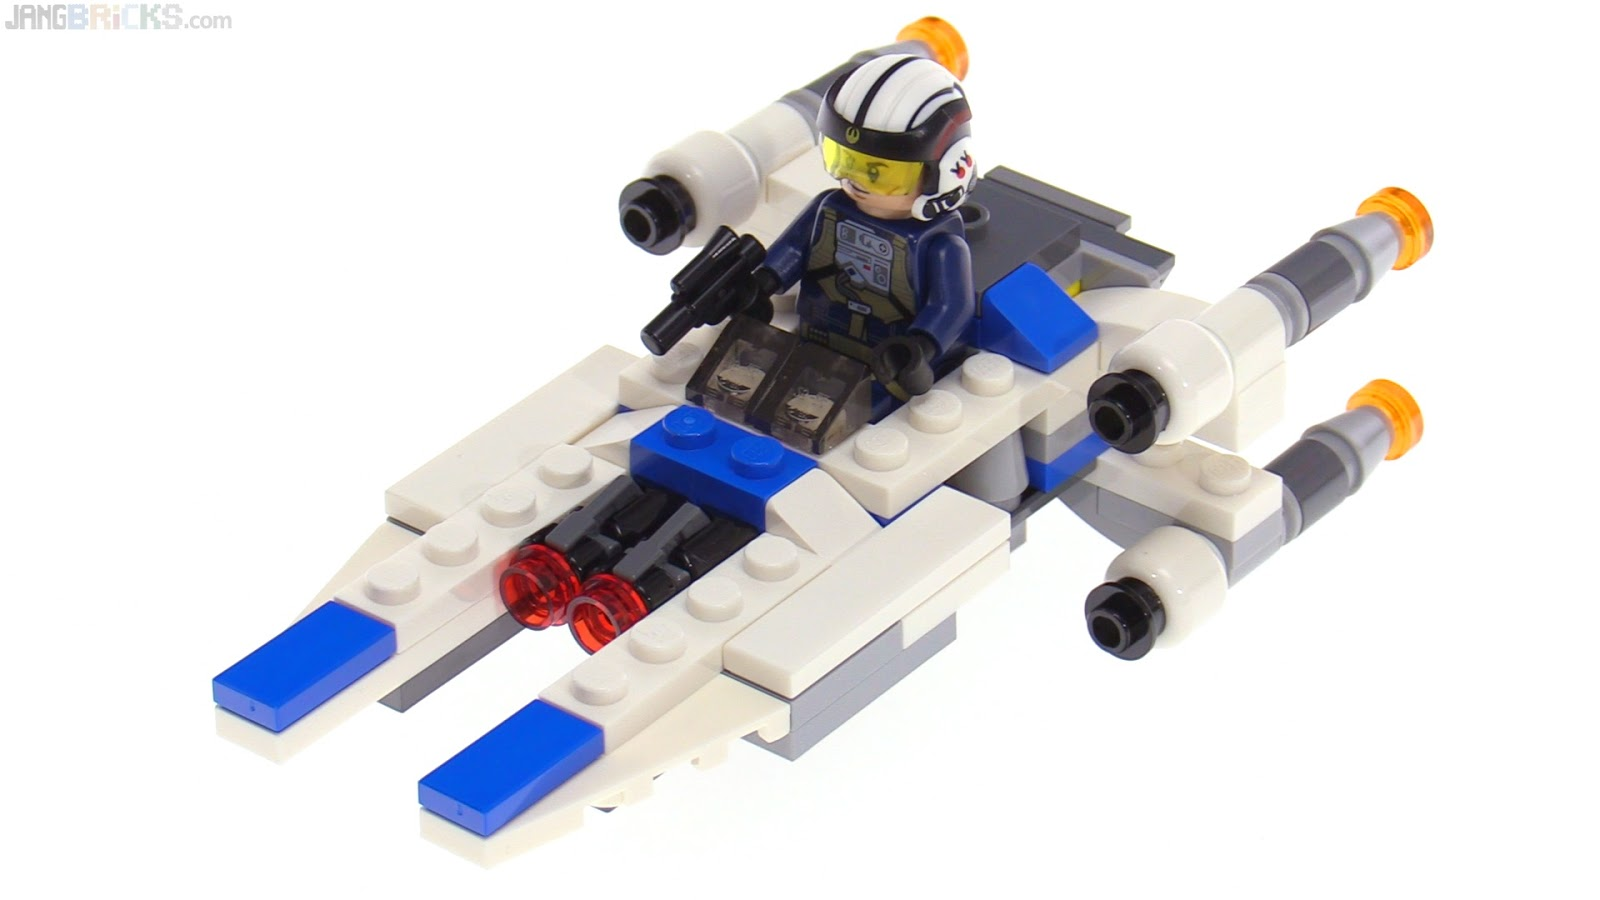 lego star wars u wing microfighter instructions